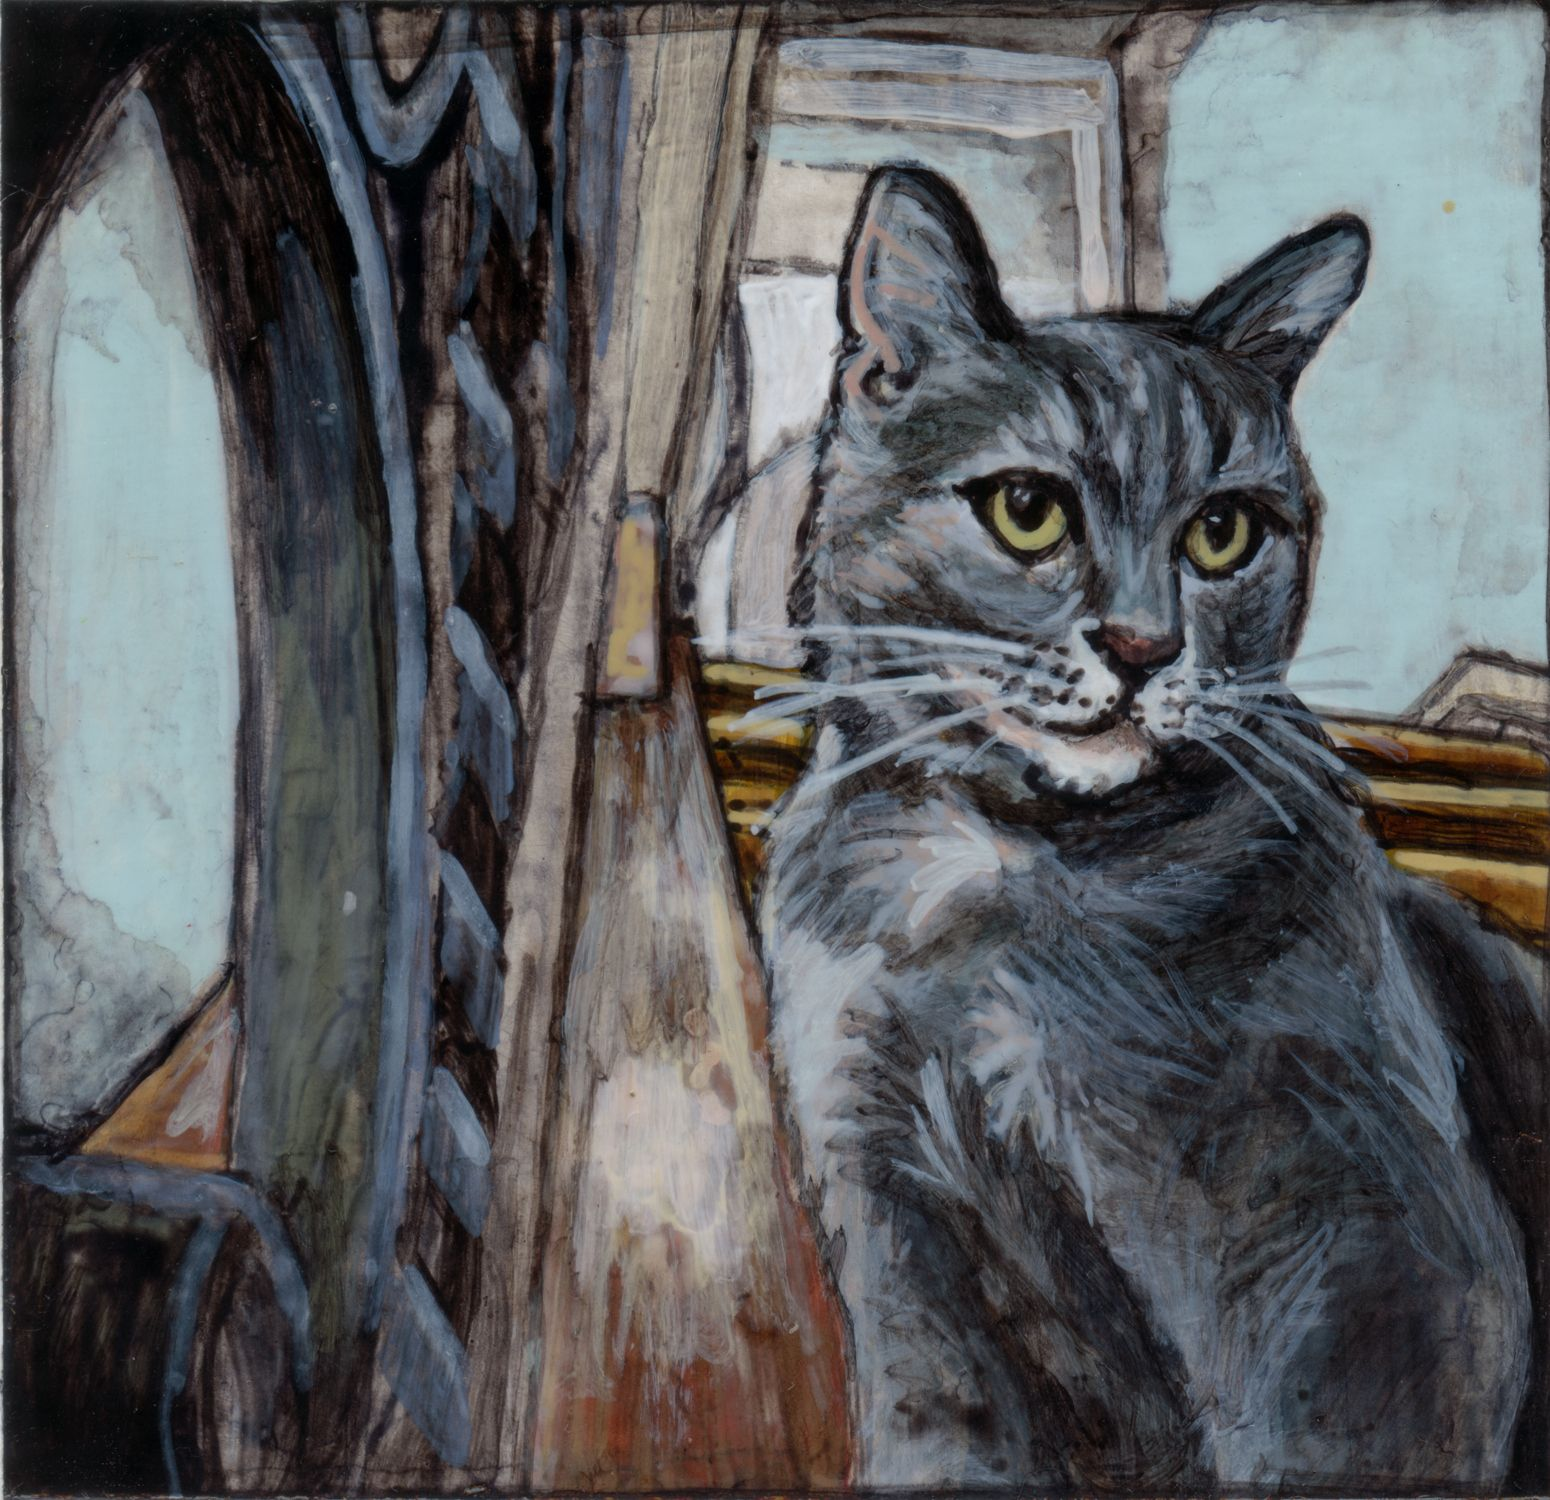 Original Painting Of A Gray Tabby Named Greta By Amy Morrissey Minorsaint Greta Is The Shyest Sweete With Images Pet Portrait Paintings Custom Pet Portraits Cat Art